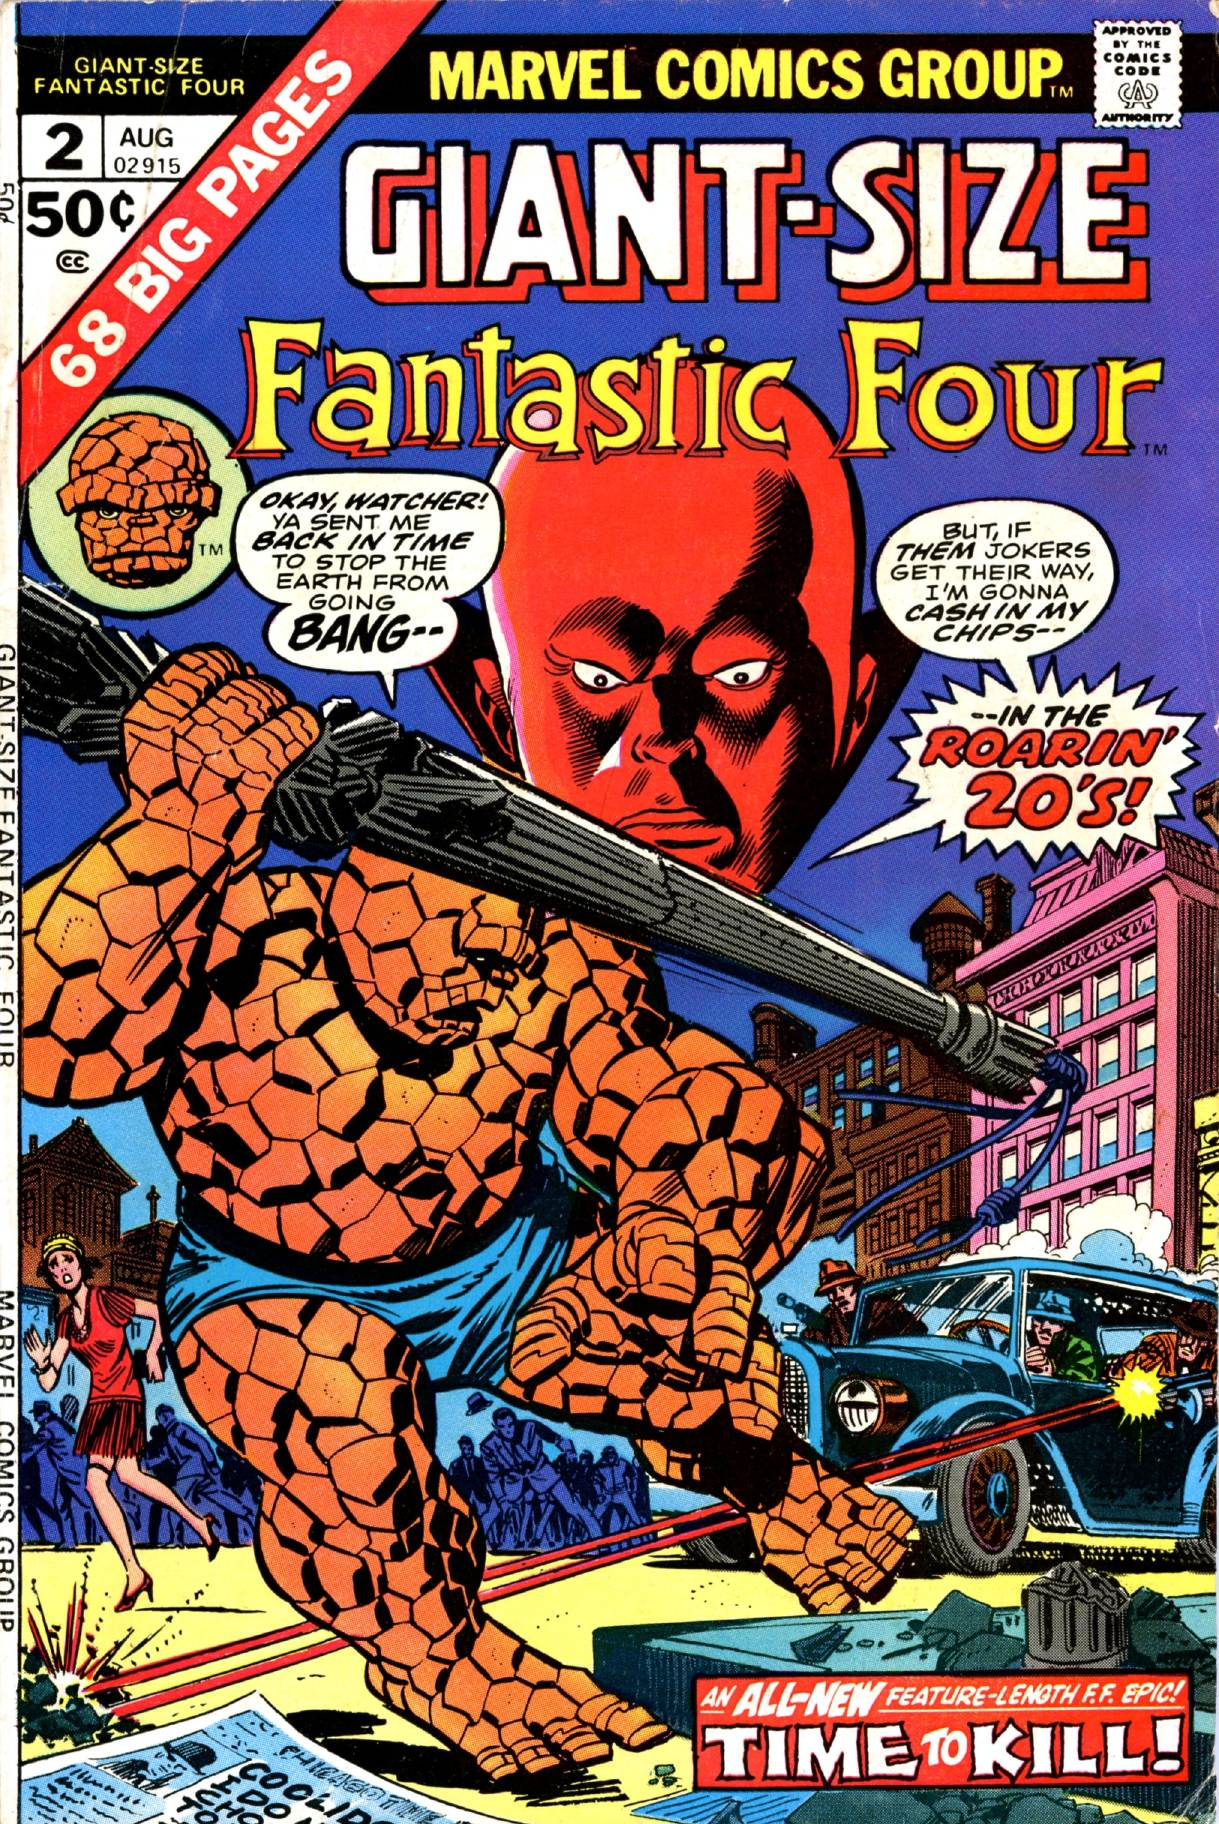 Giant-Size Fantastic Four 2 Page 1